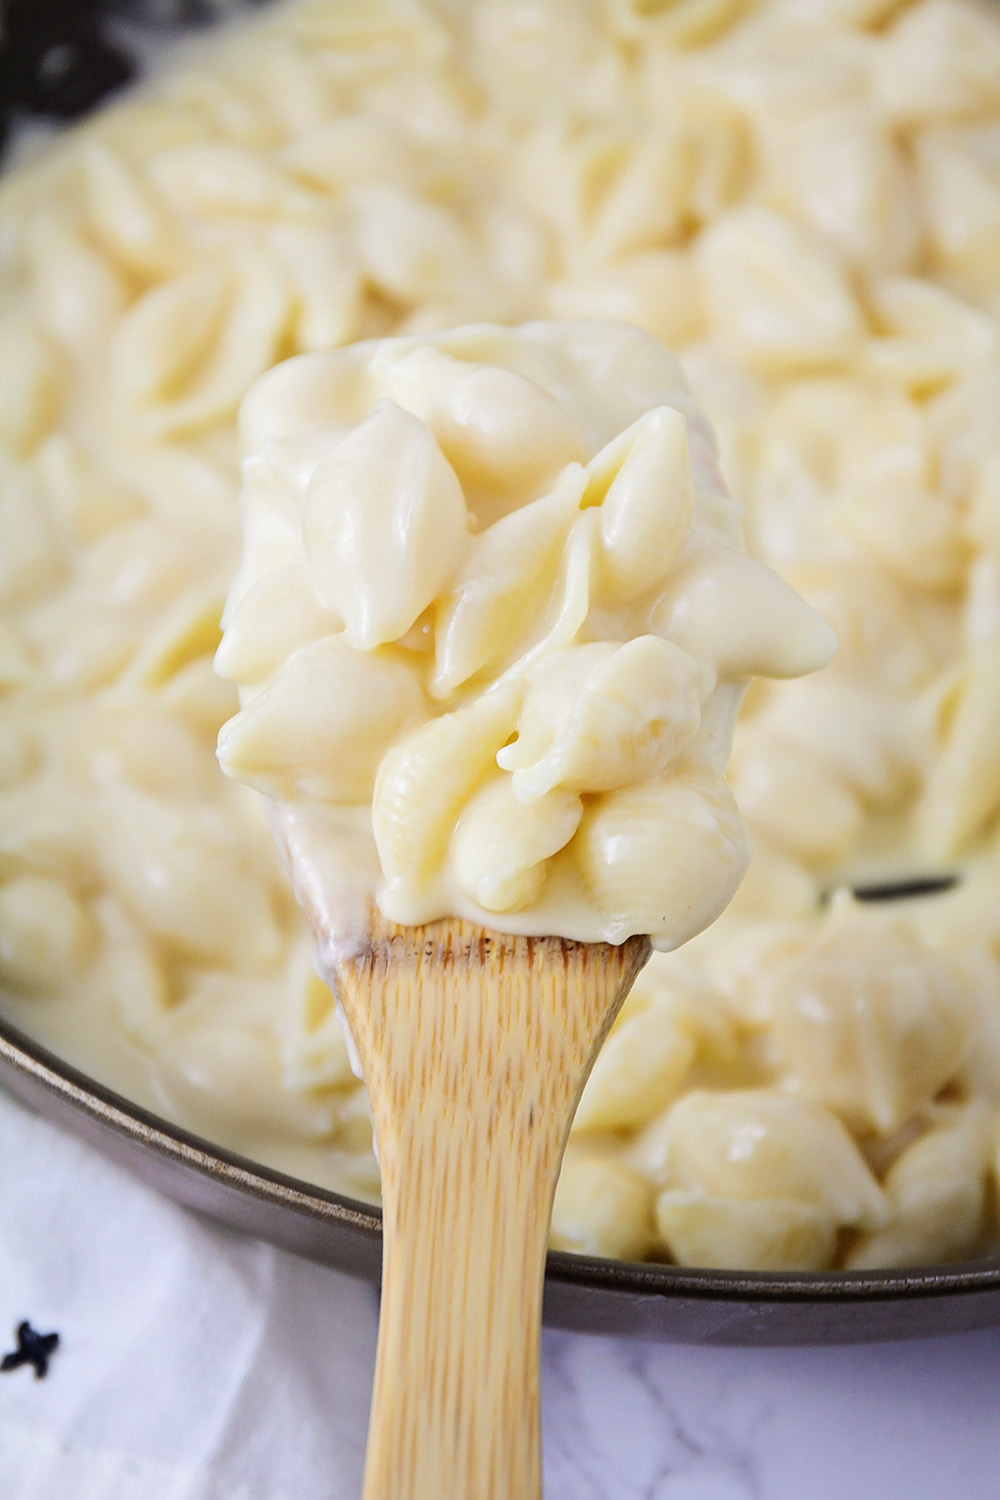 This stovetop mac and cheese is so creamy, cheesy, and all around delicious!